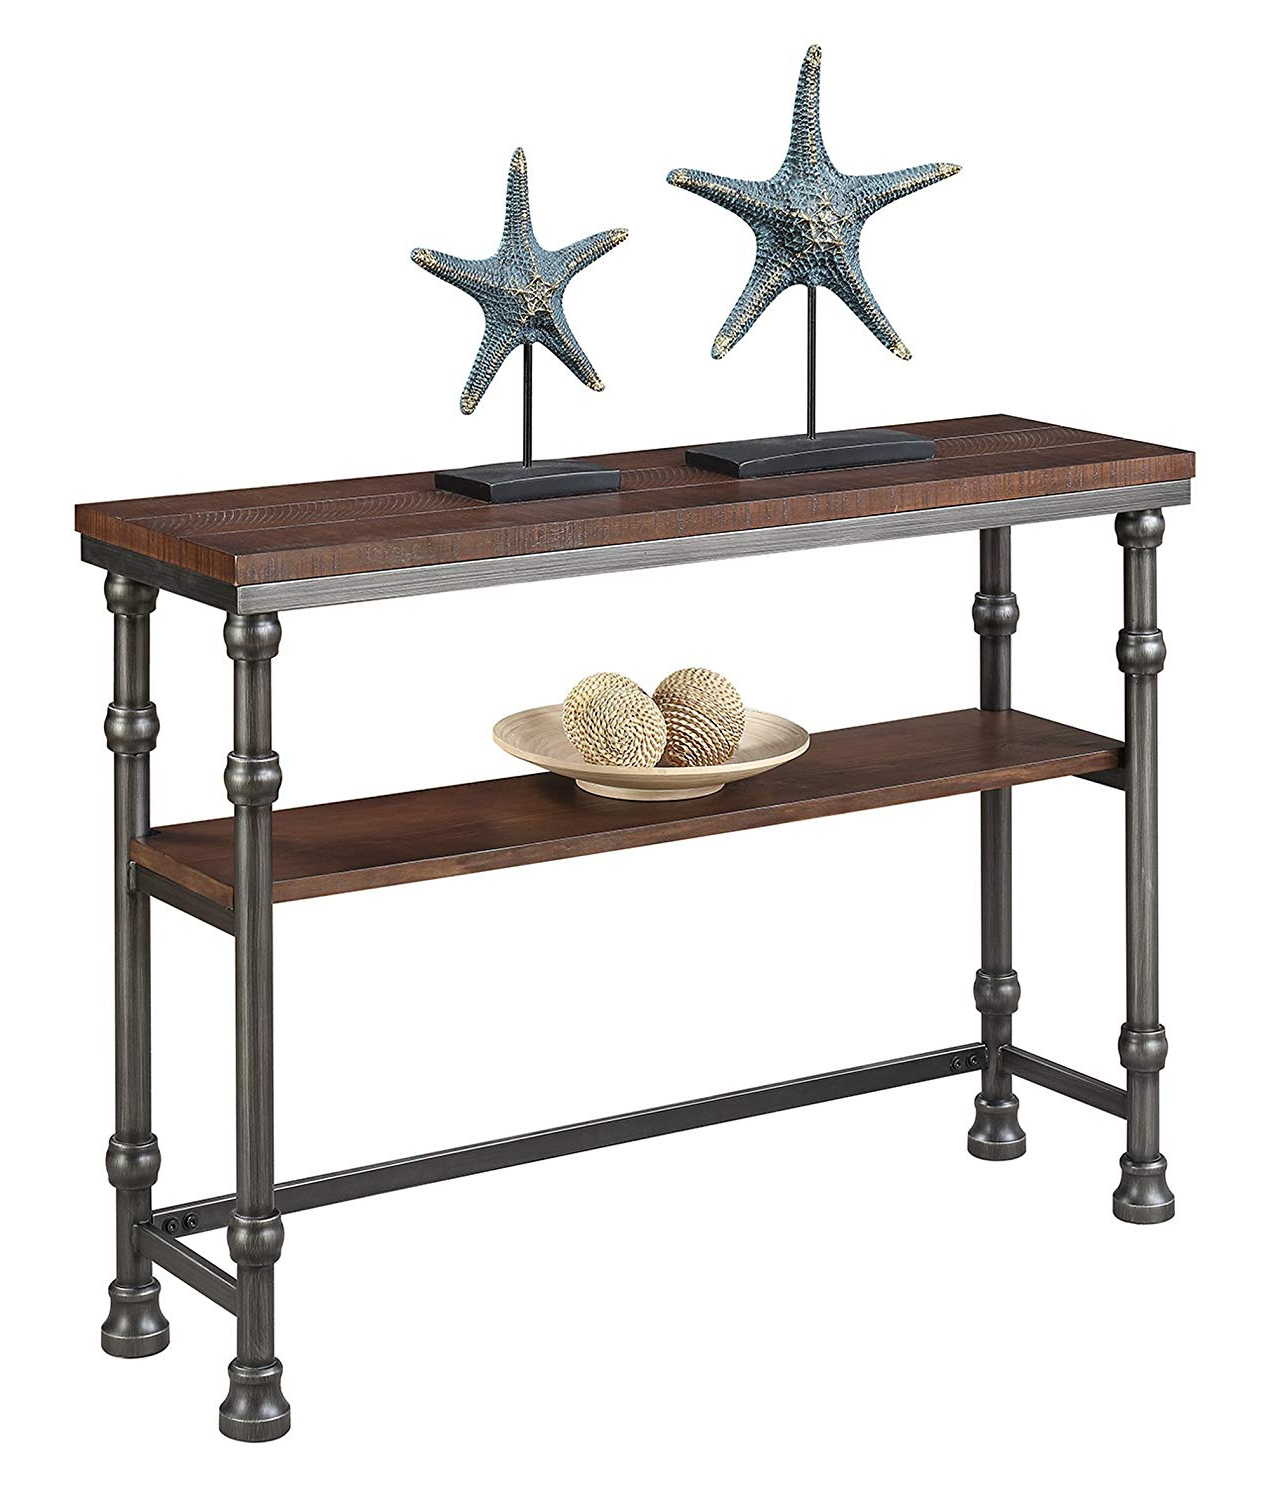 Current Amazon: Convenience Concepts 171199 Console Table: Kitchen & Dining Intended For Yukon Grey Console Tables (Gallery 5 of 20)